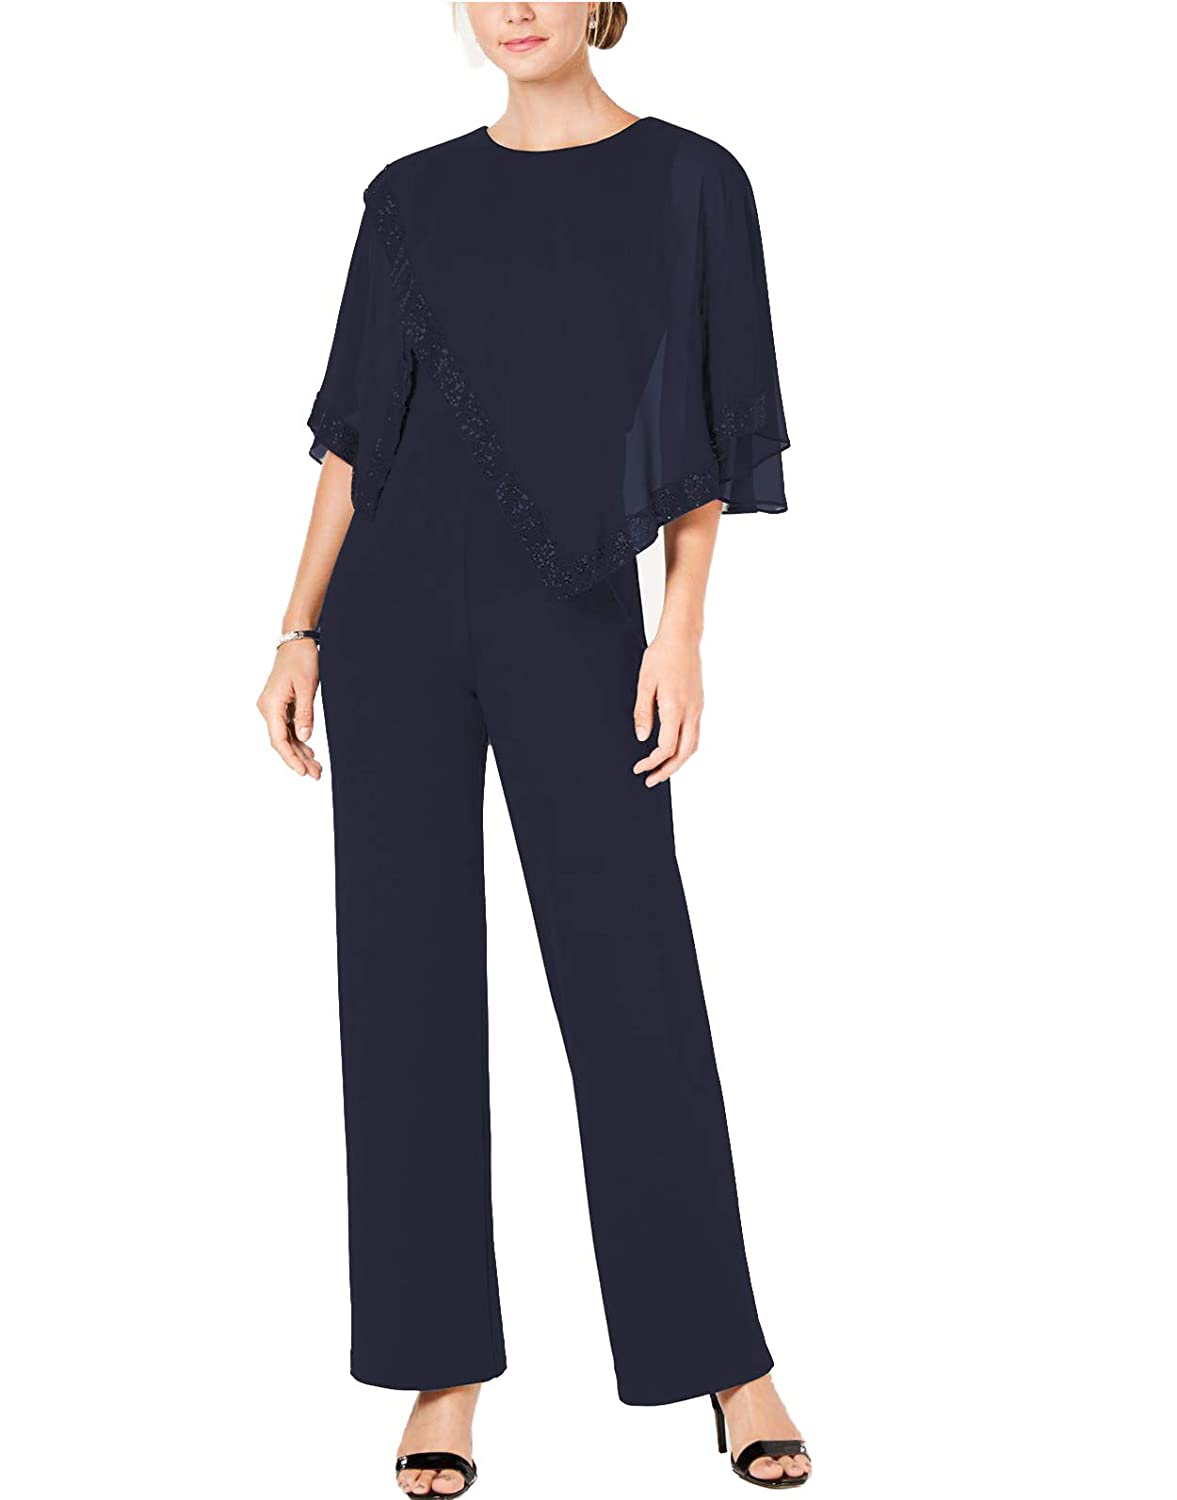 Navy bluee Fitty Lell Women's 2 Pieces Mother of The Bride Pants Suits with Beaded Cape